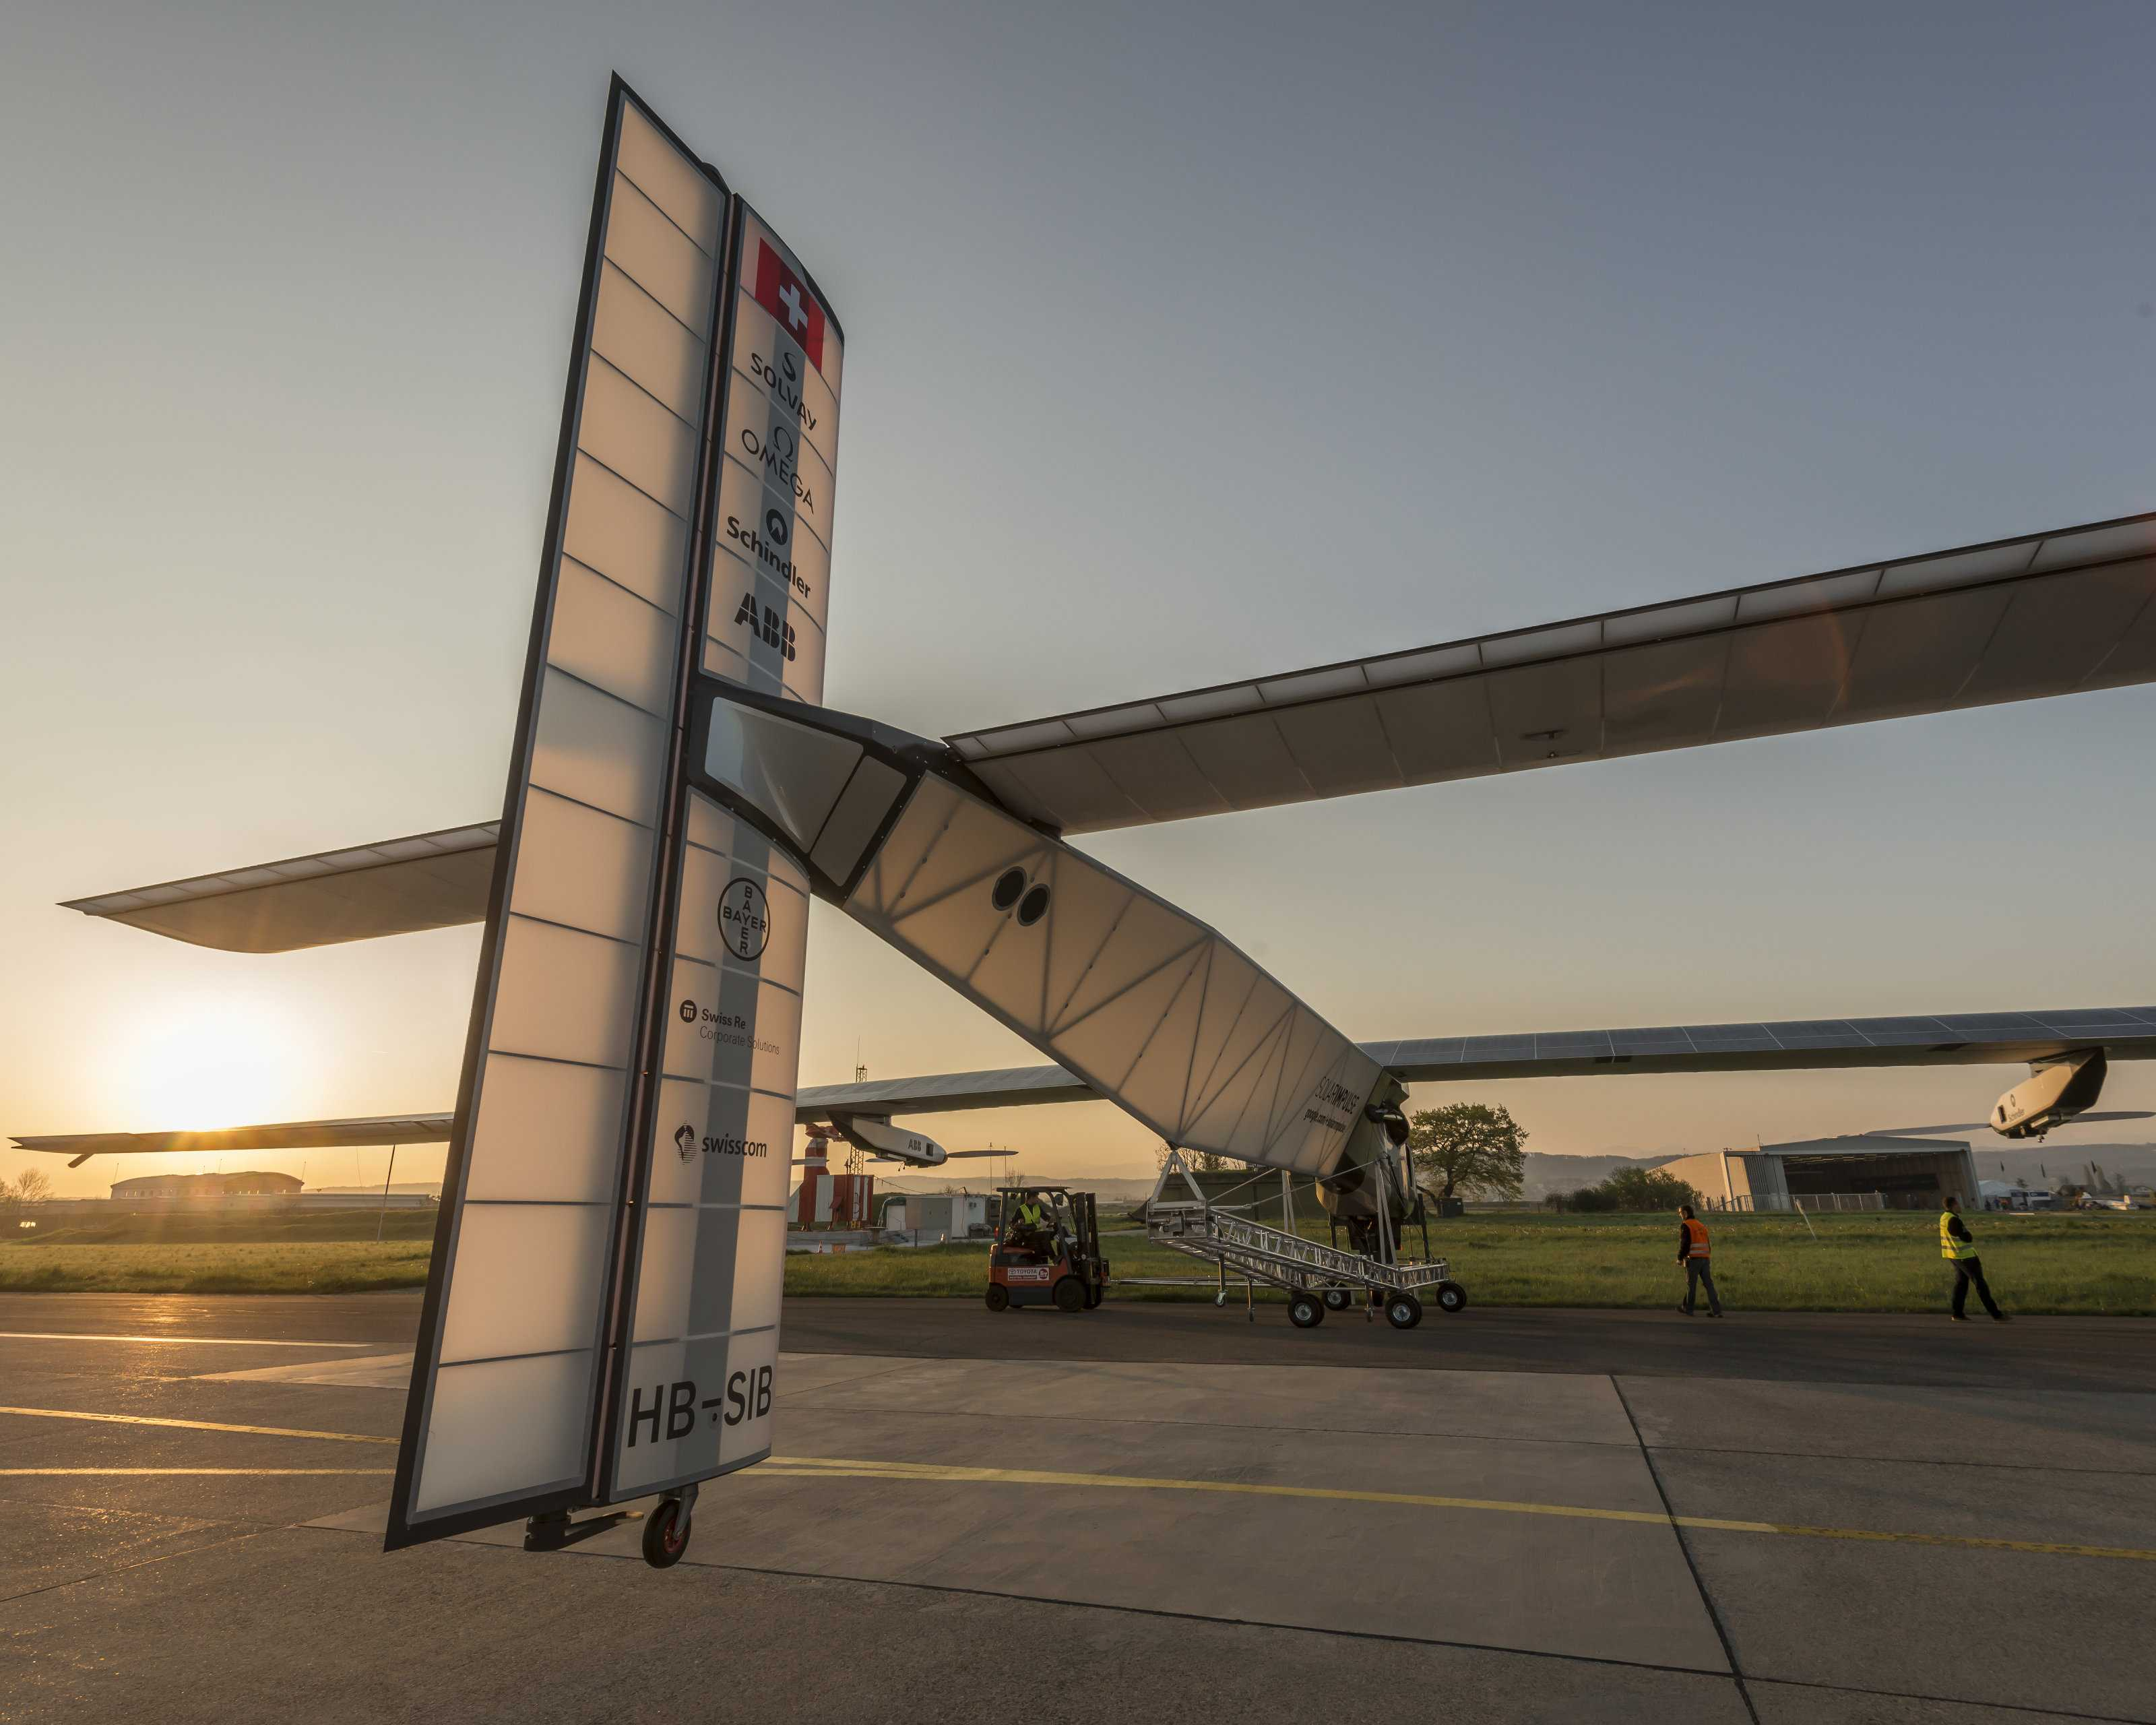 Solar Impulse HB-SIB | © Jean Revillard